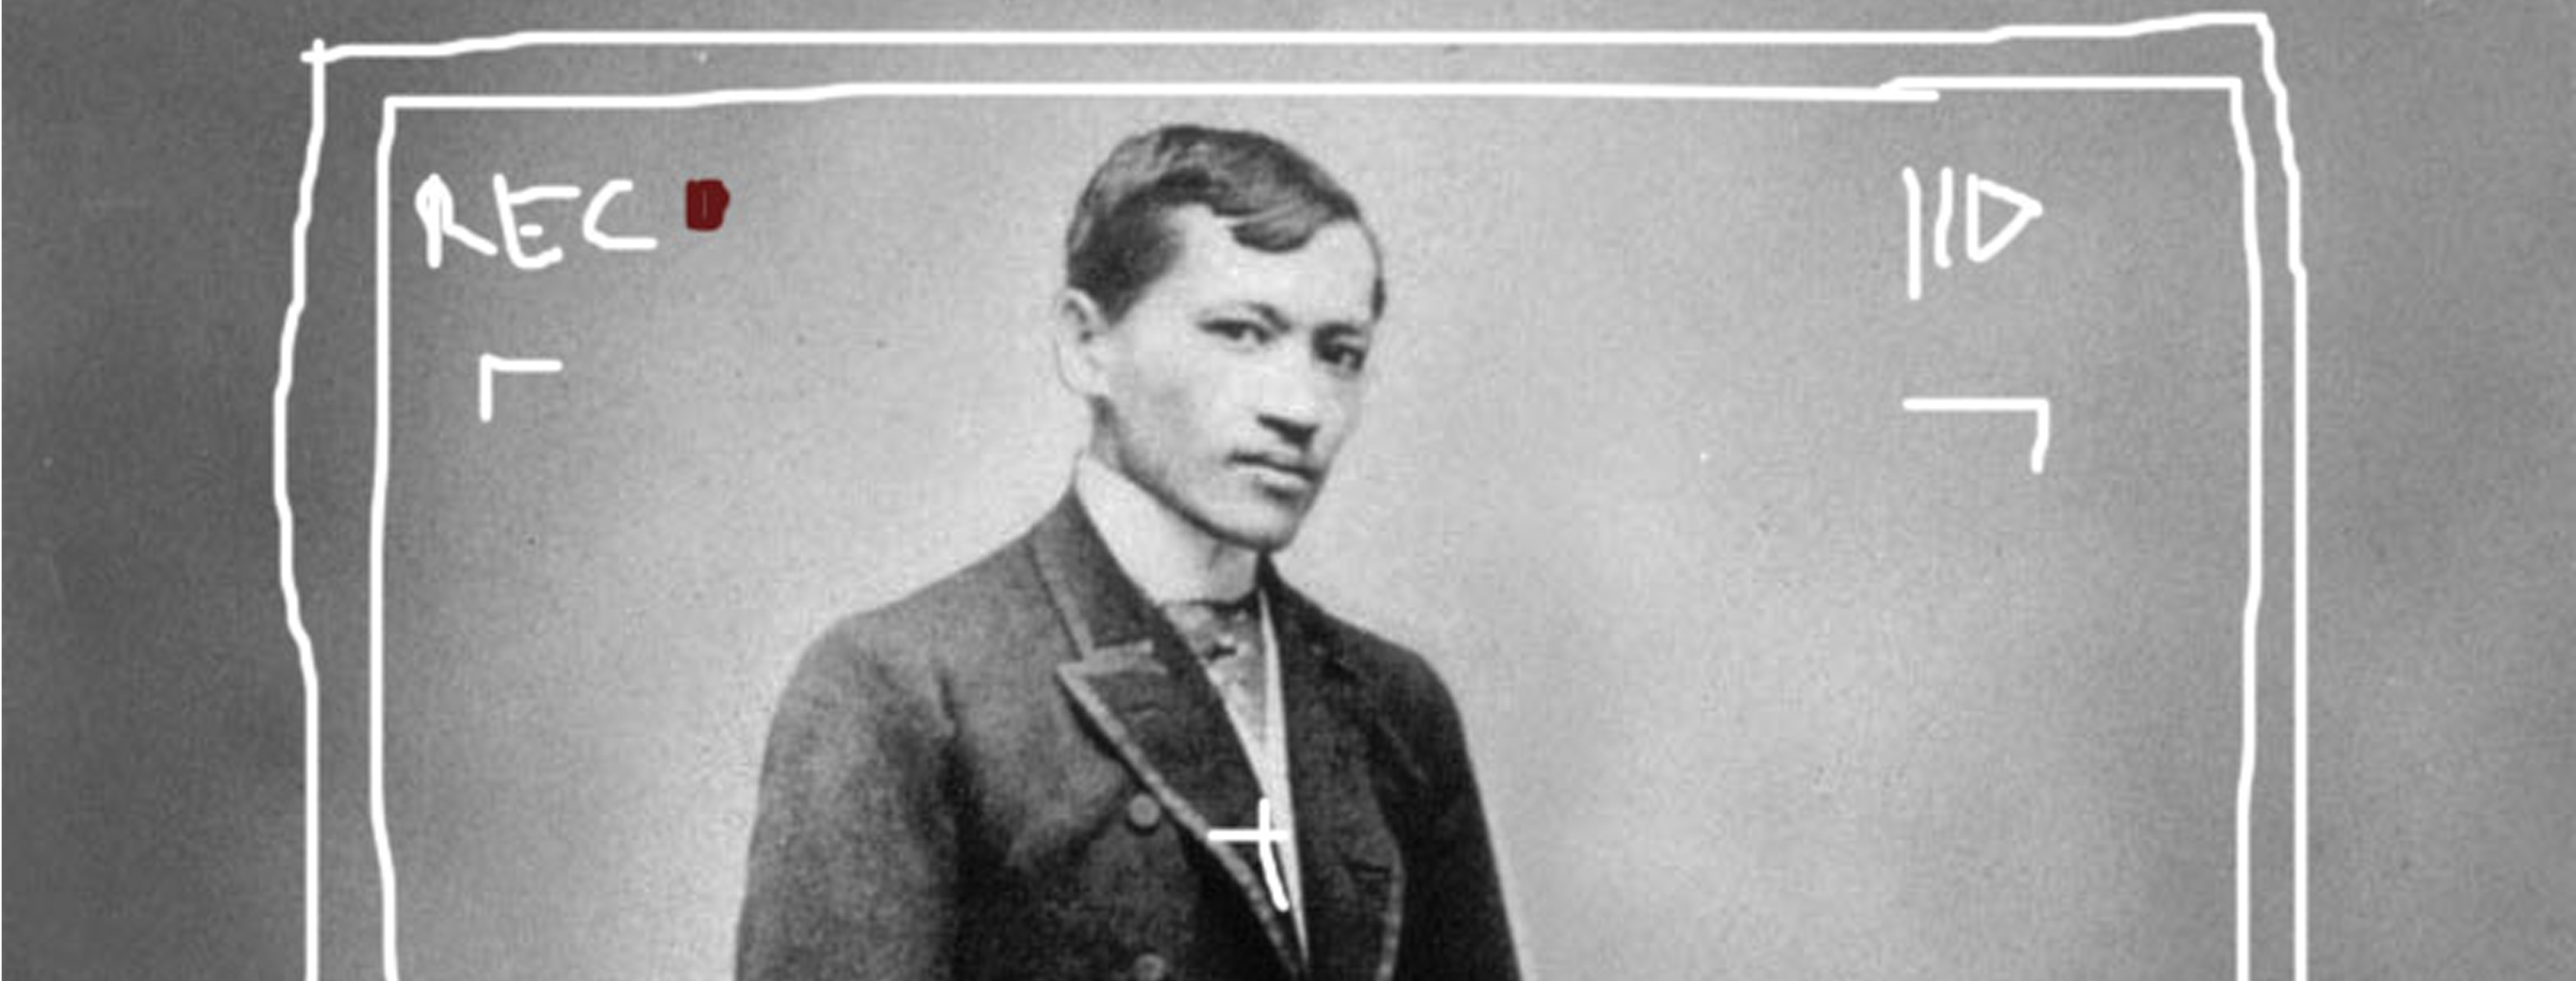 Jose Rizal in film: The golden boy